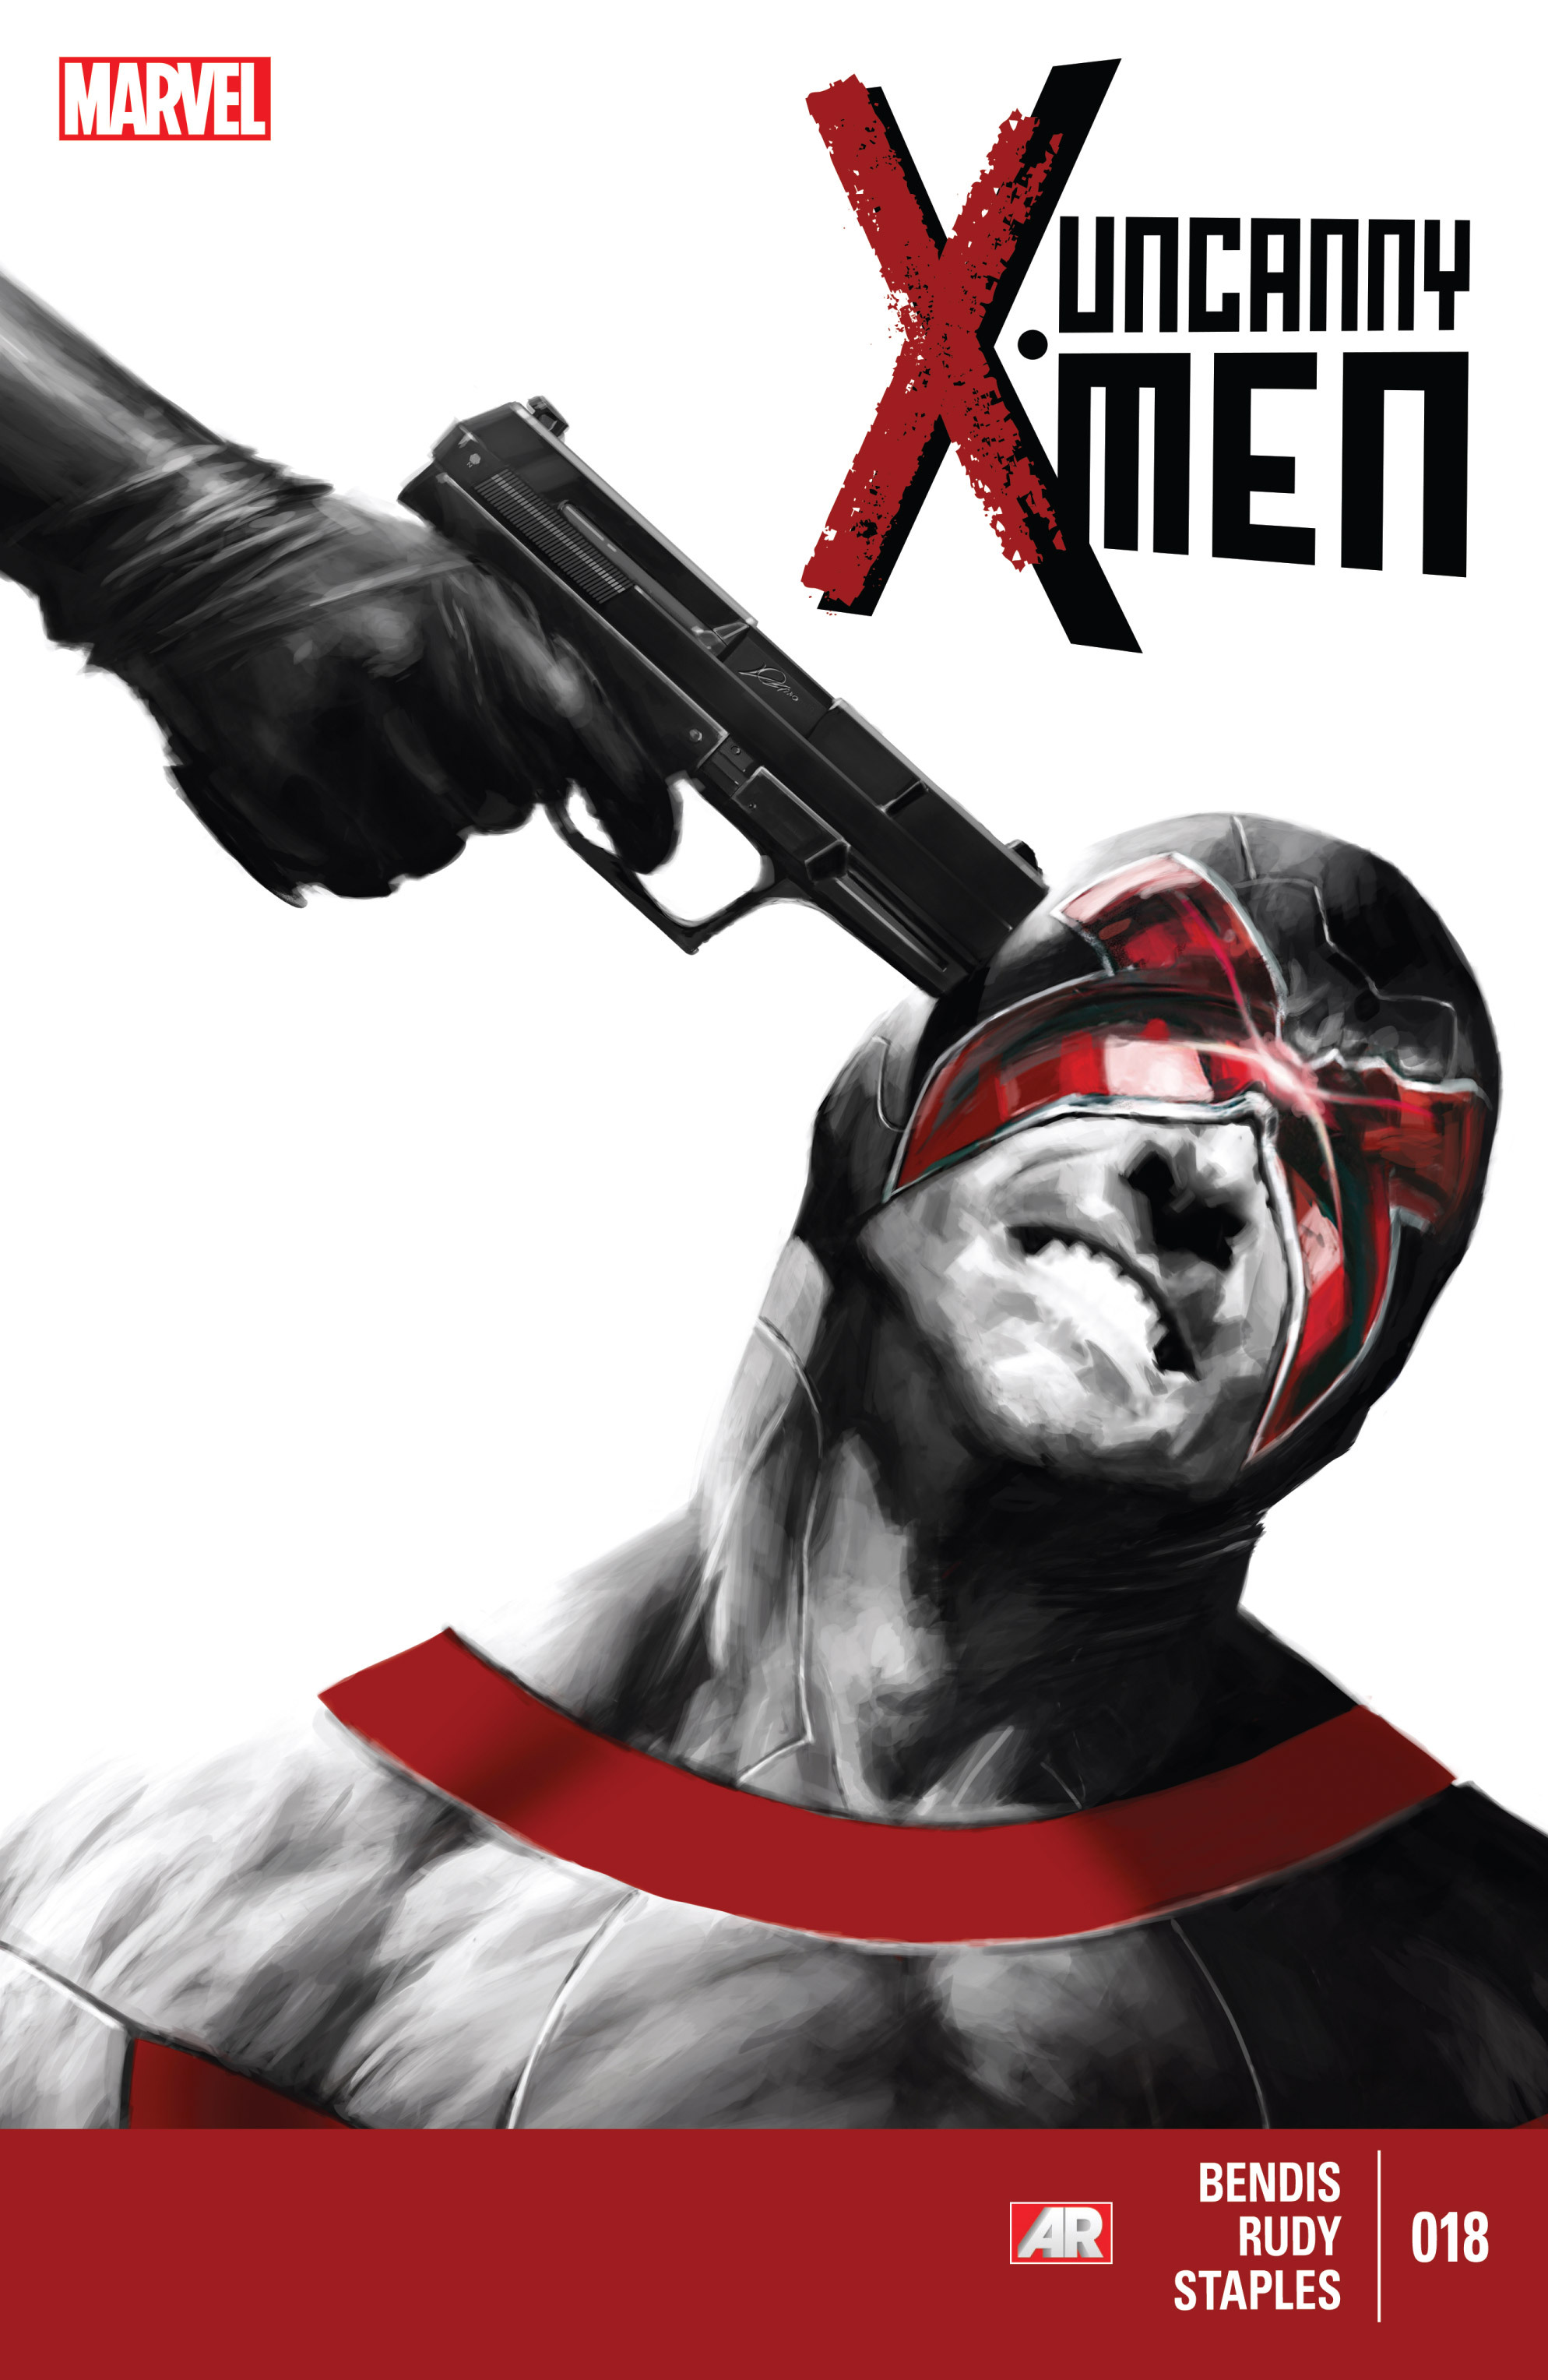 Read online Uncanny X-Men (2013) comic -  Issue # _TPB 3 - The Good, The Bad, The Inhuman - 85